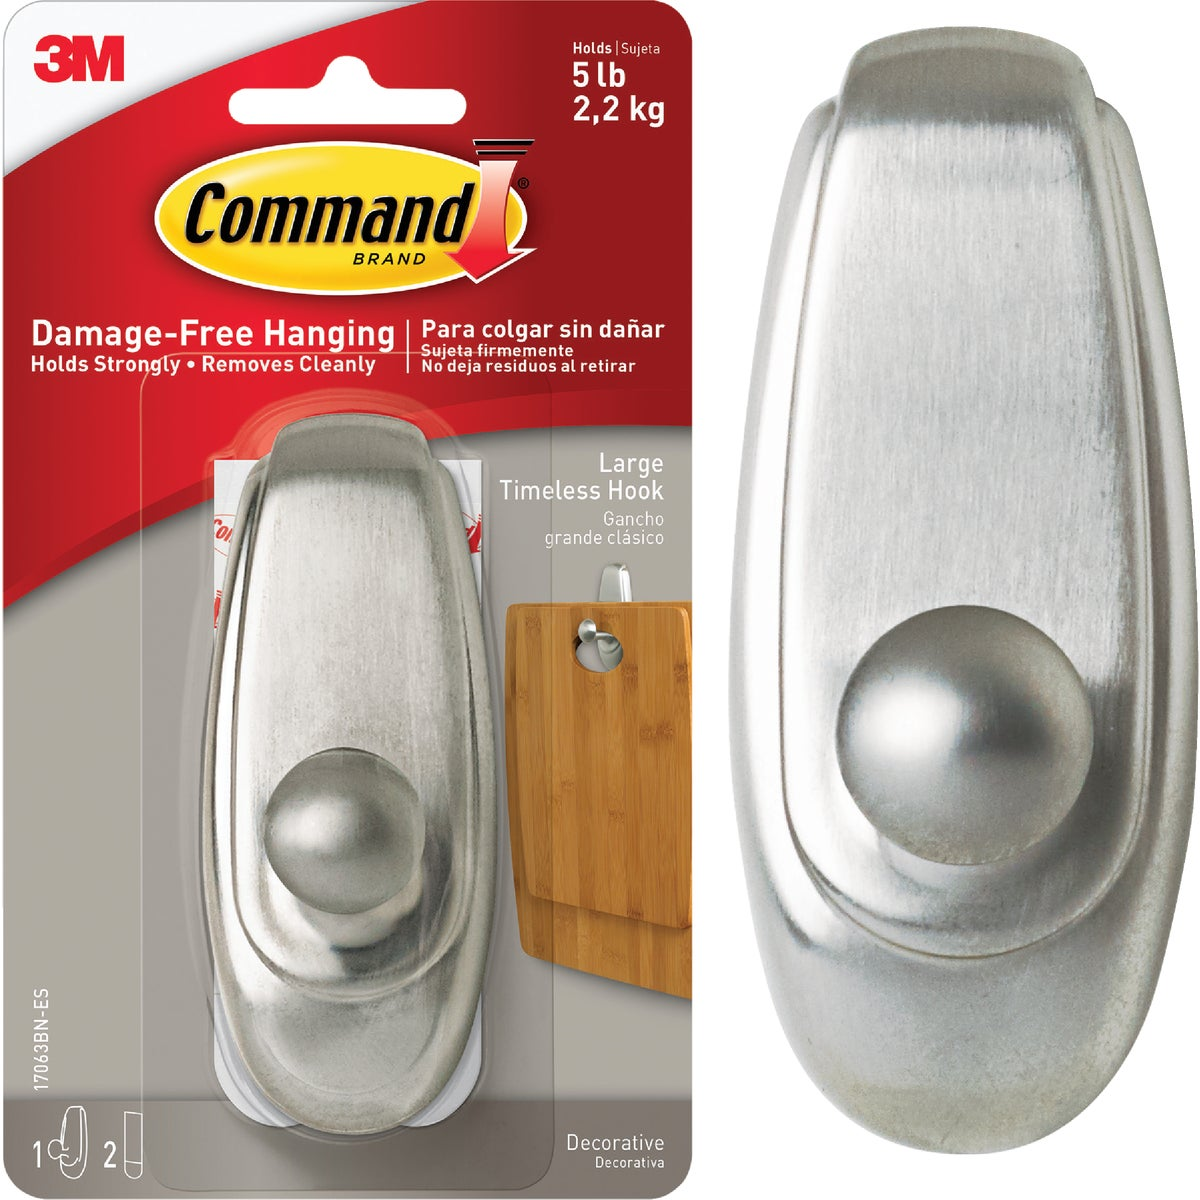 3M COMMAND LRG NICKEL HOOK 17063BN